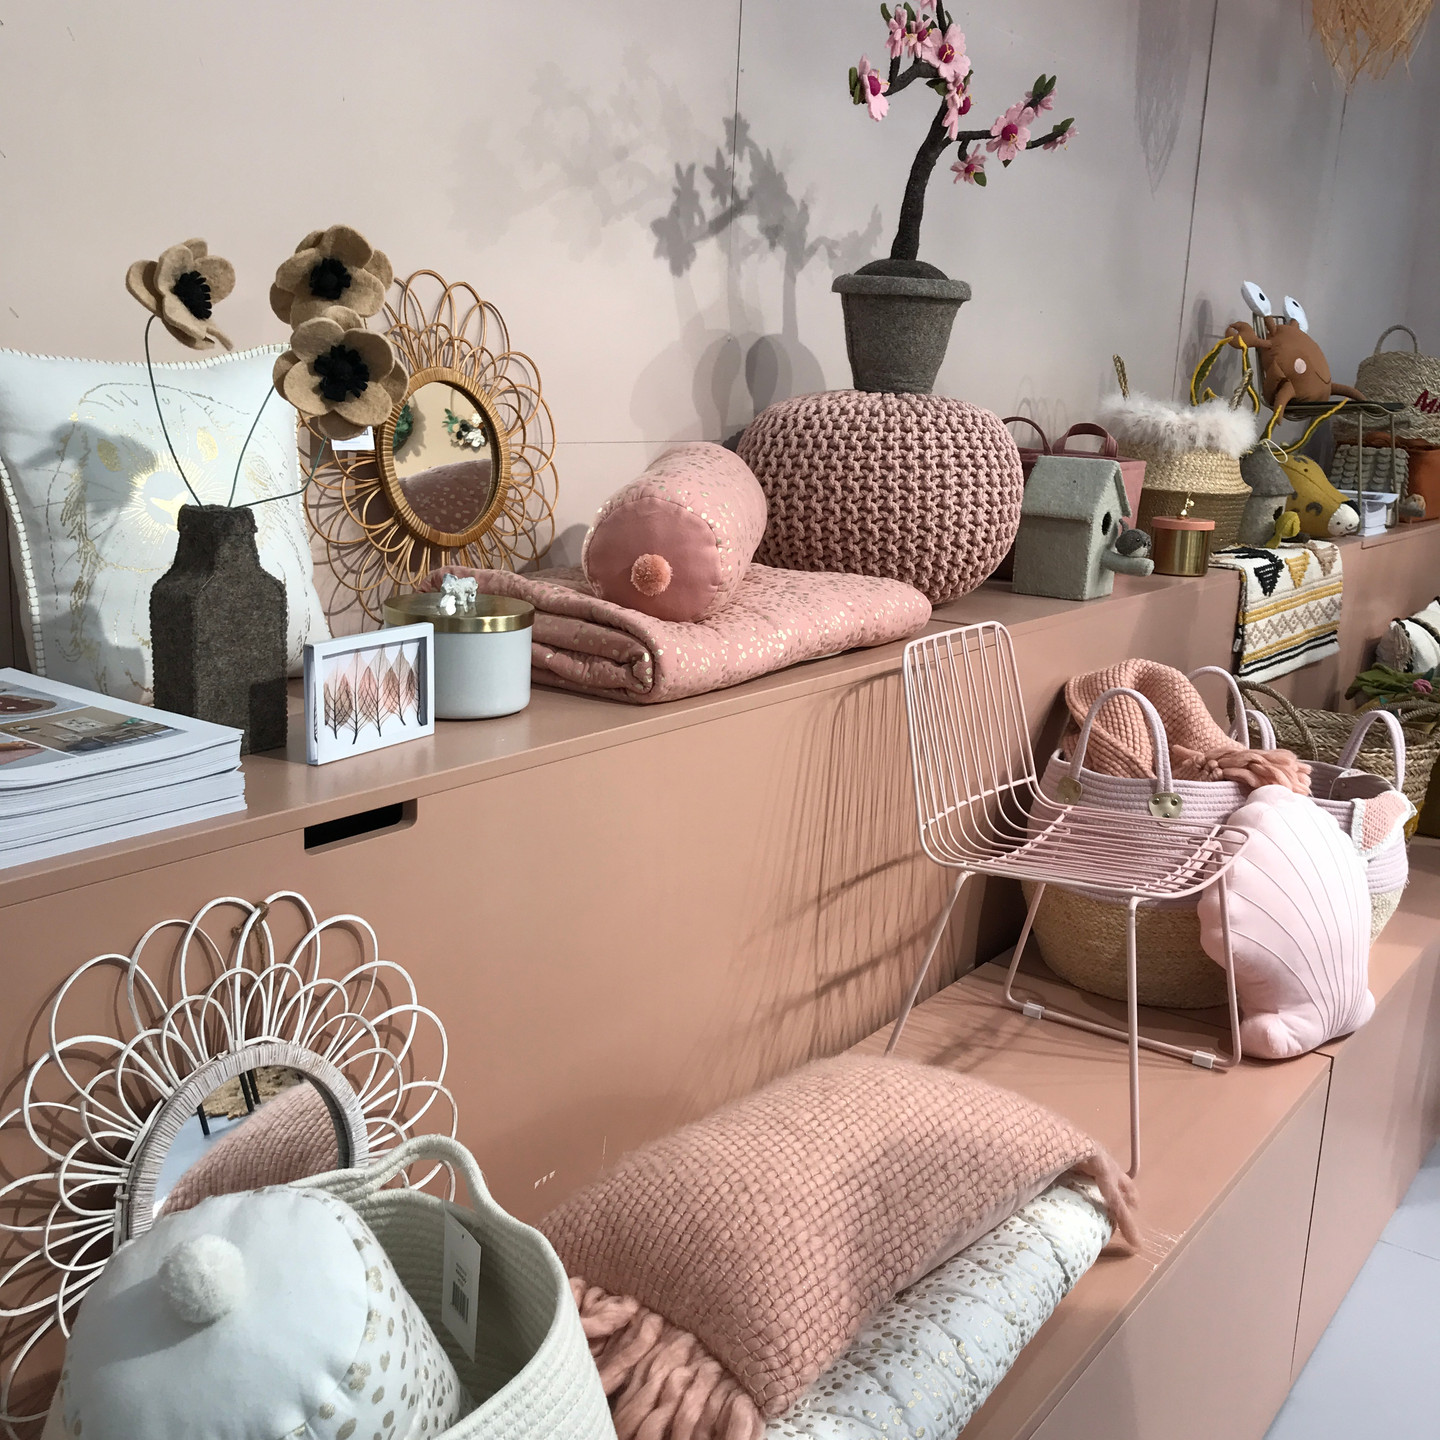 Blush Home Display with Kids Chair, Pouf, Pillows, Baskets, and Gold Wire Mirrors